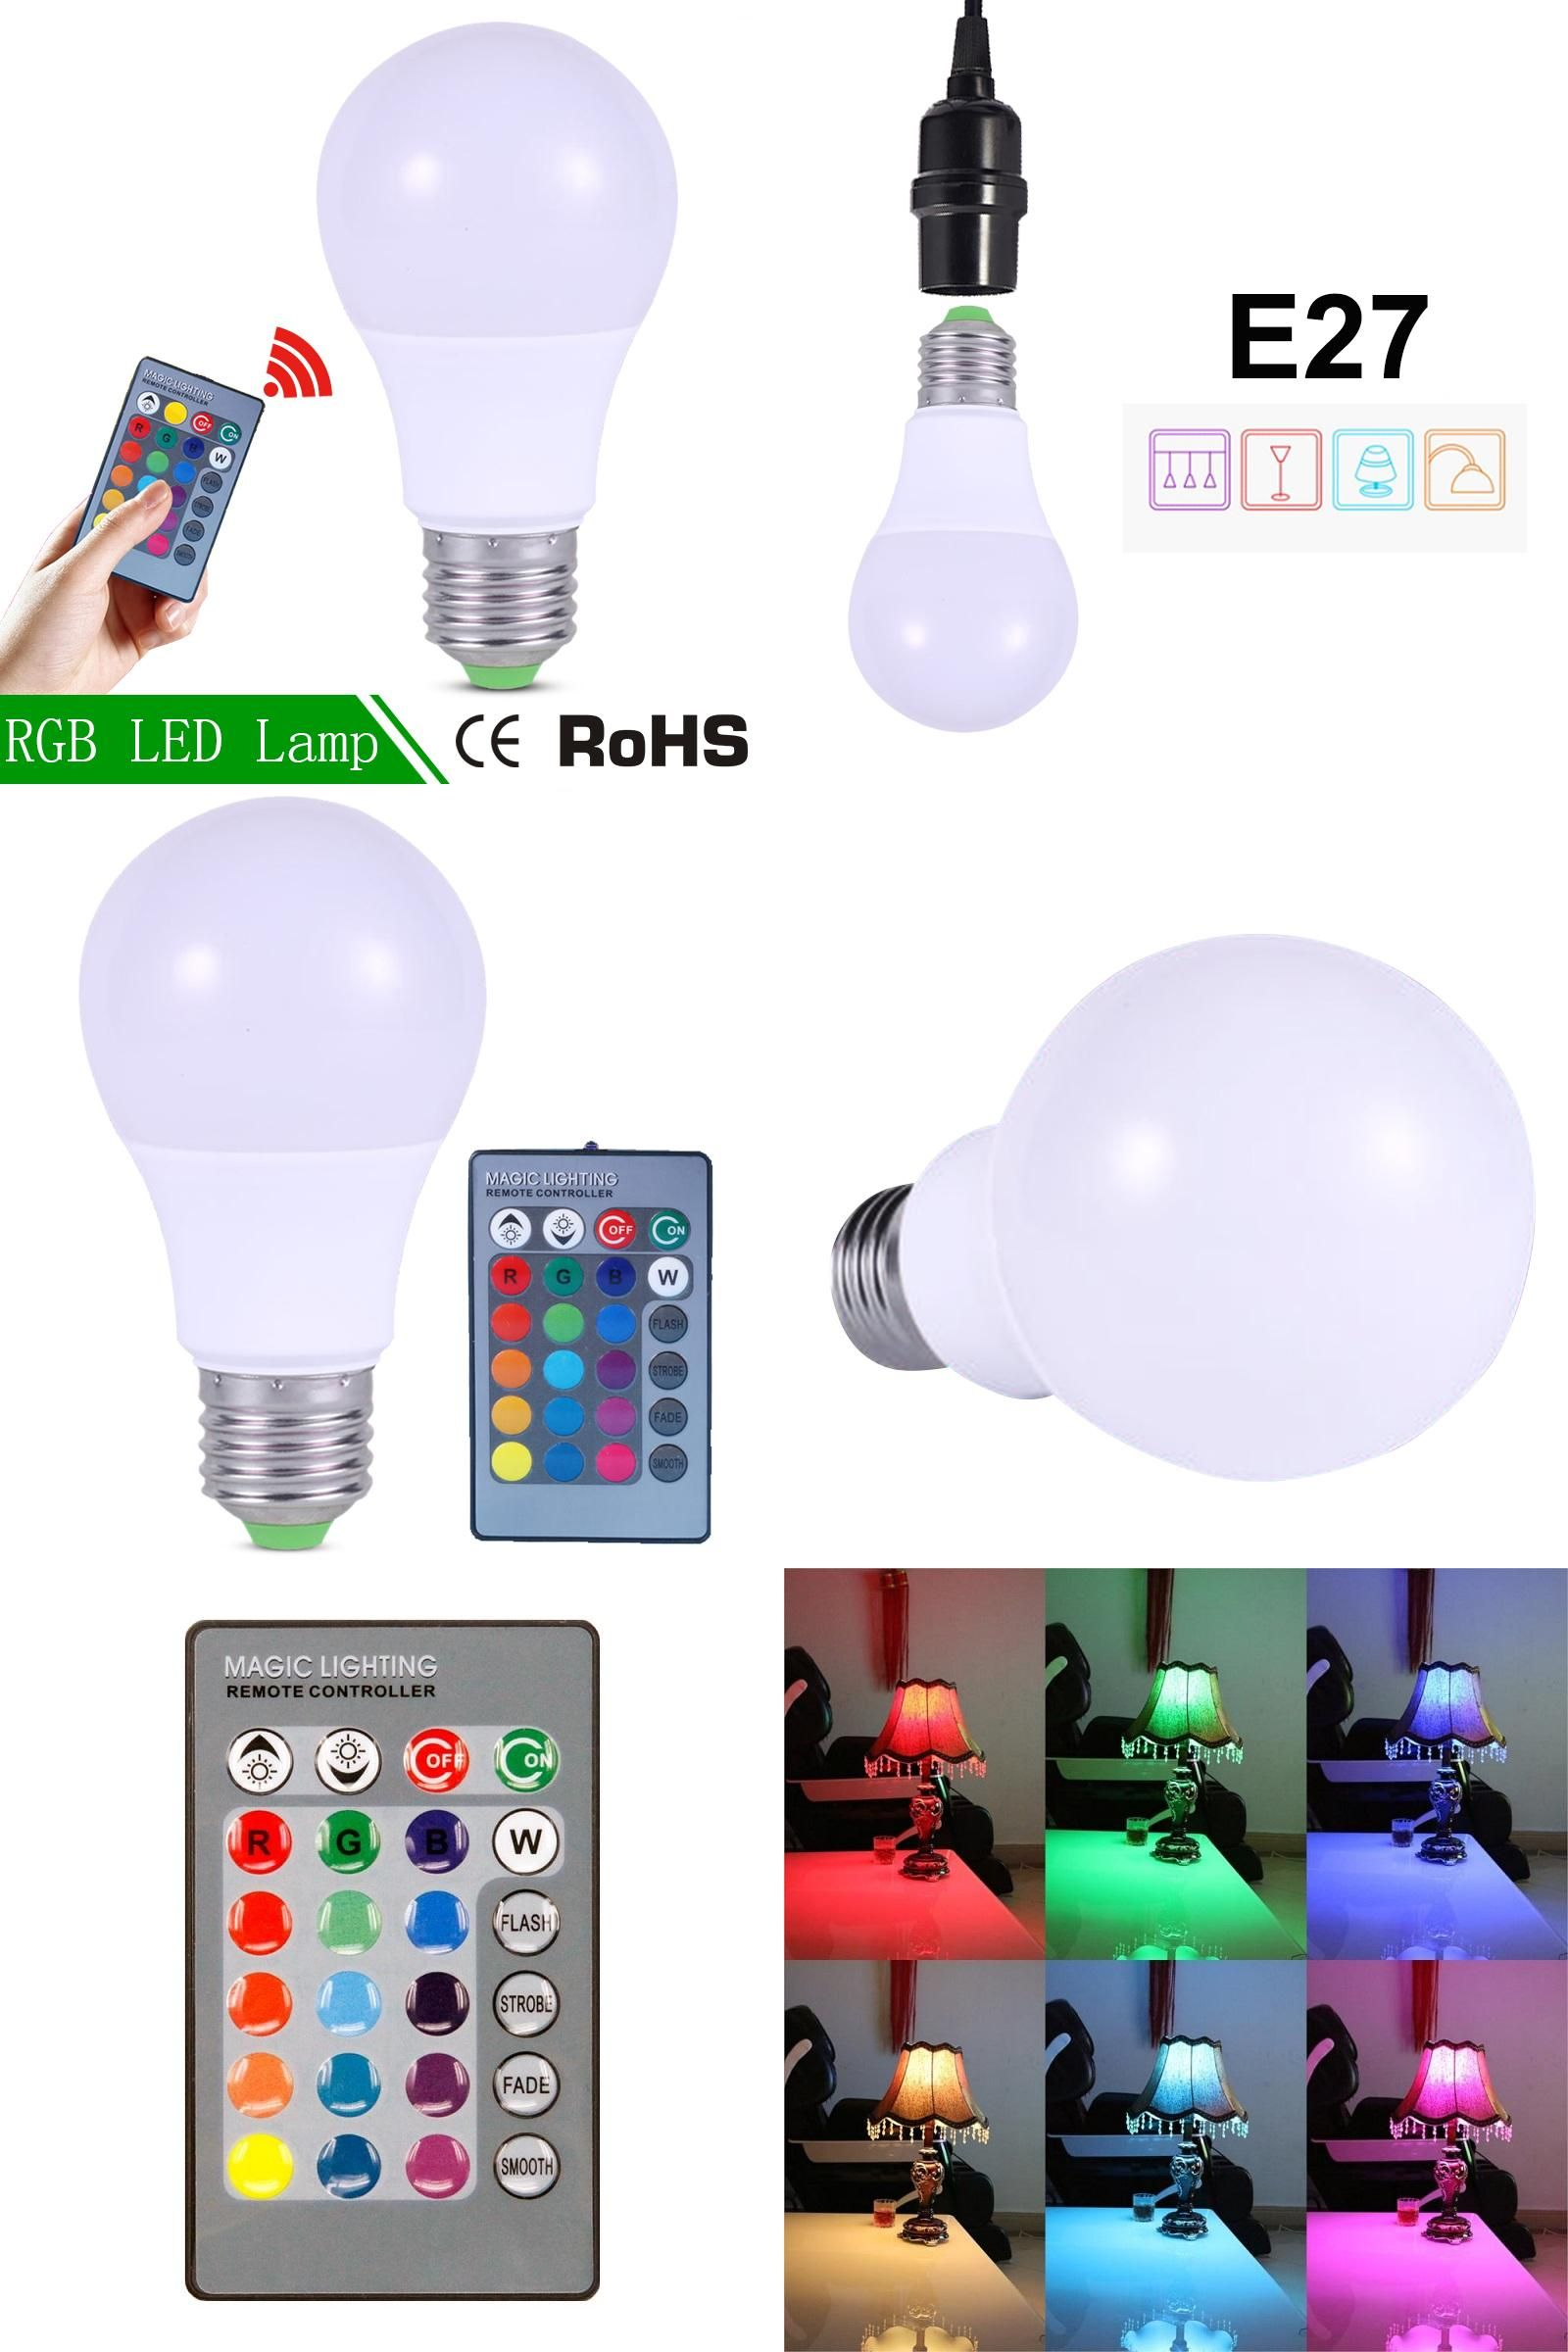 Visit To Buy Rgb Led Lampada 3w Led Lamp 220v Mini High Power Lampada Colorful With Remote Controller E27 Rgbw Led Bulb Rgb Led Lights Led Light Bulb Rgb Led